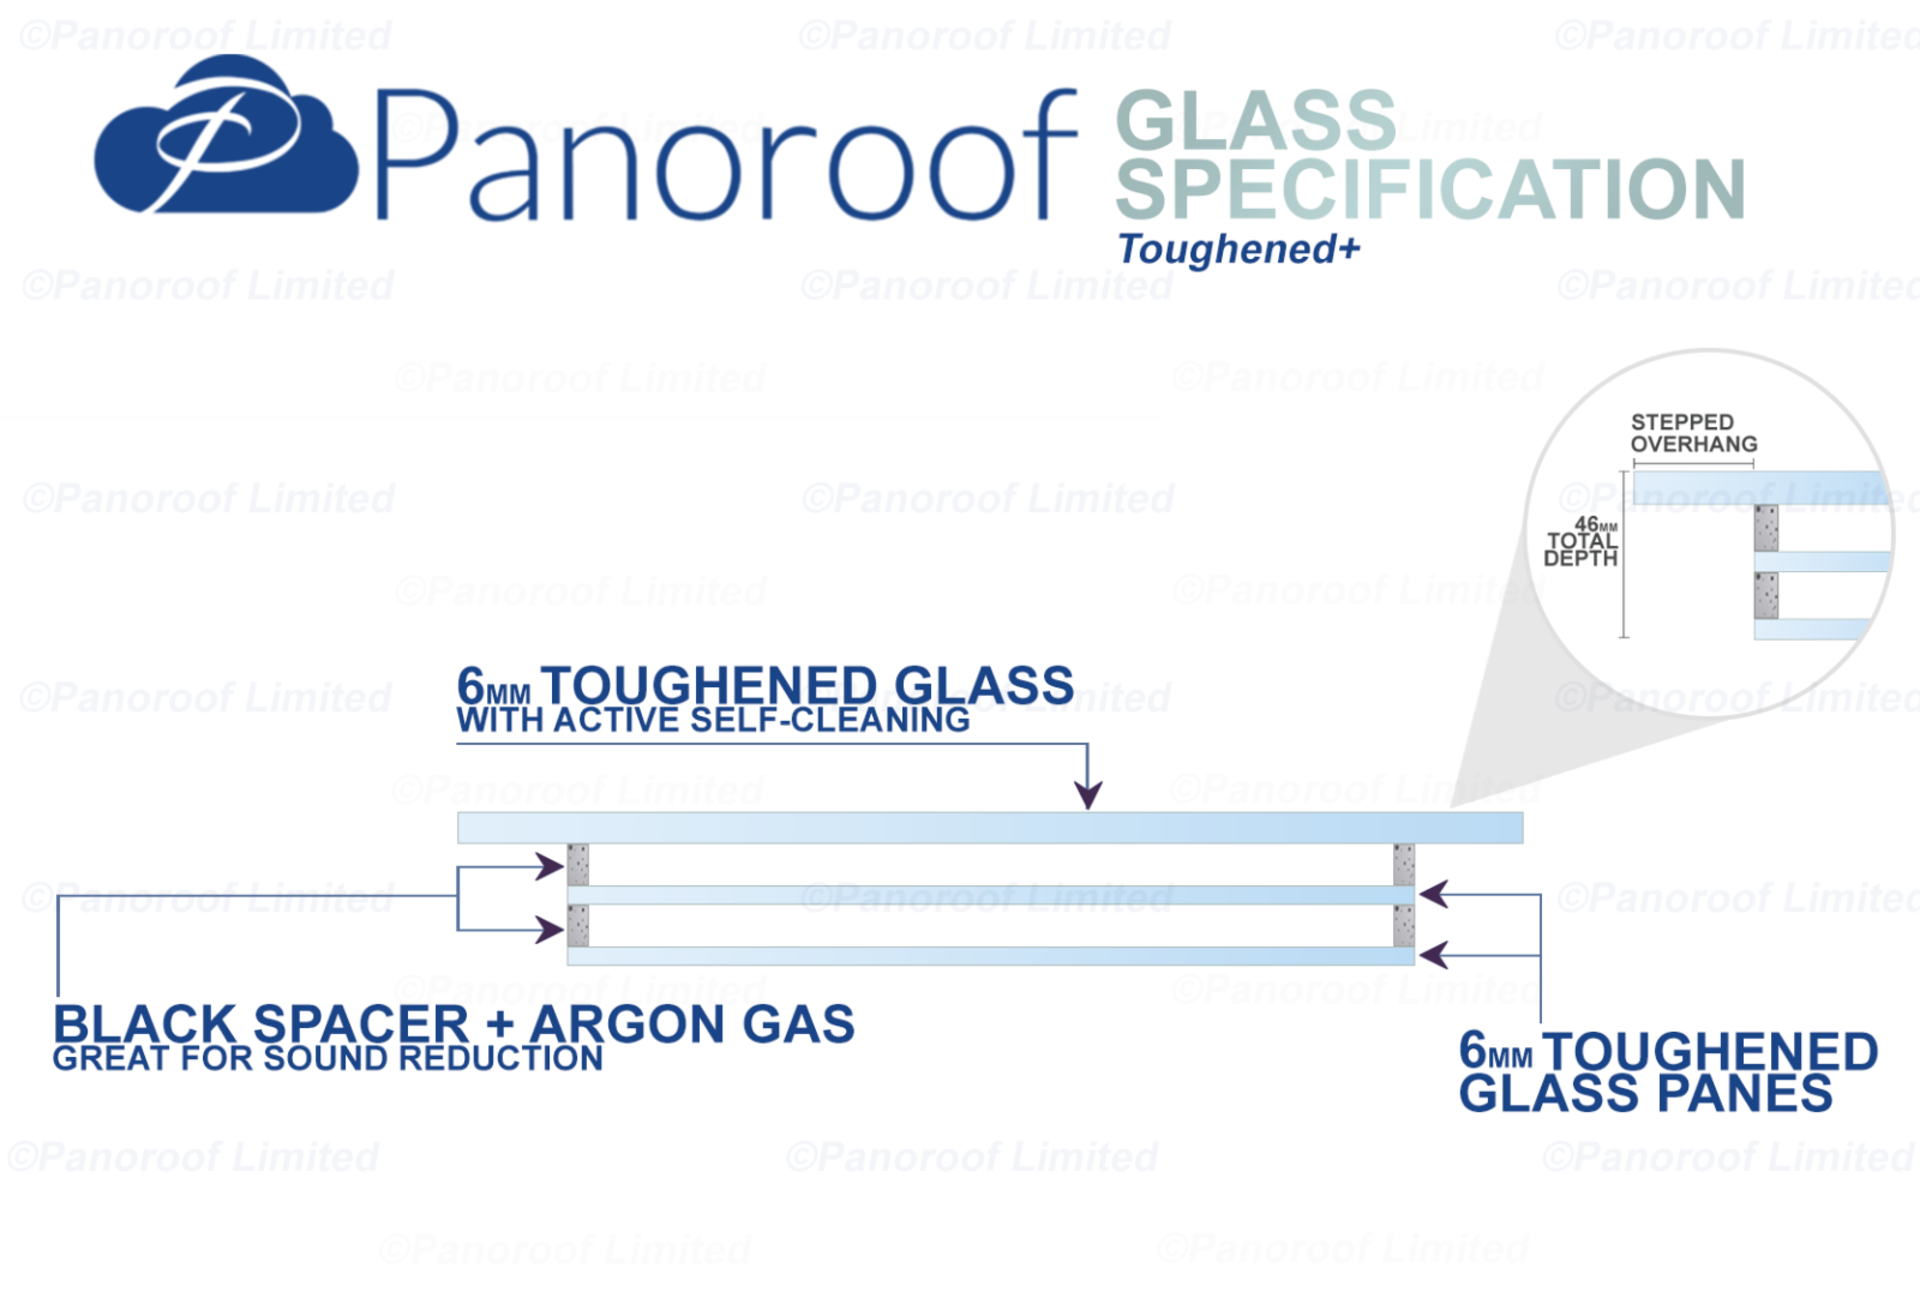 Panoroof 1000x4000mm (inside Size Visable glass area) Seamless Glass Skylight Flat Roof Rooflight - Image 5 of 6